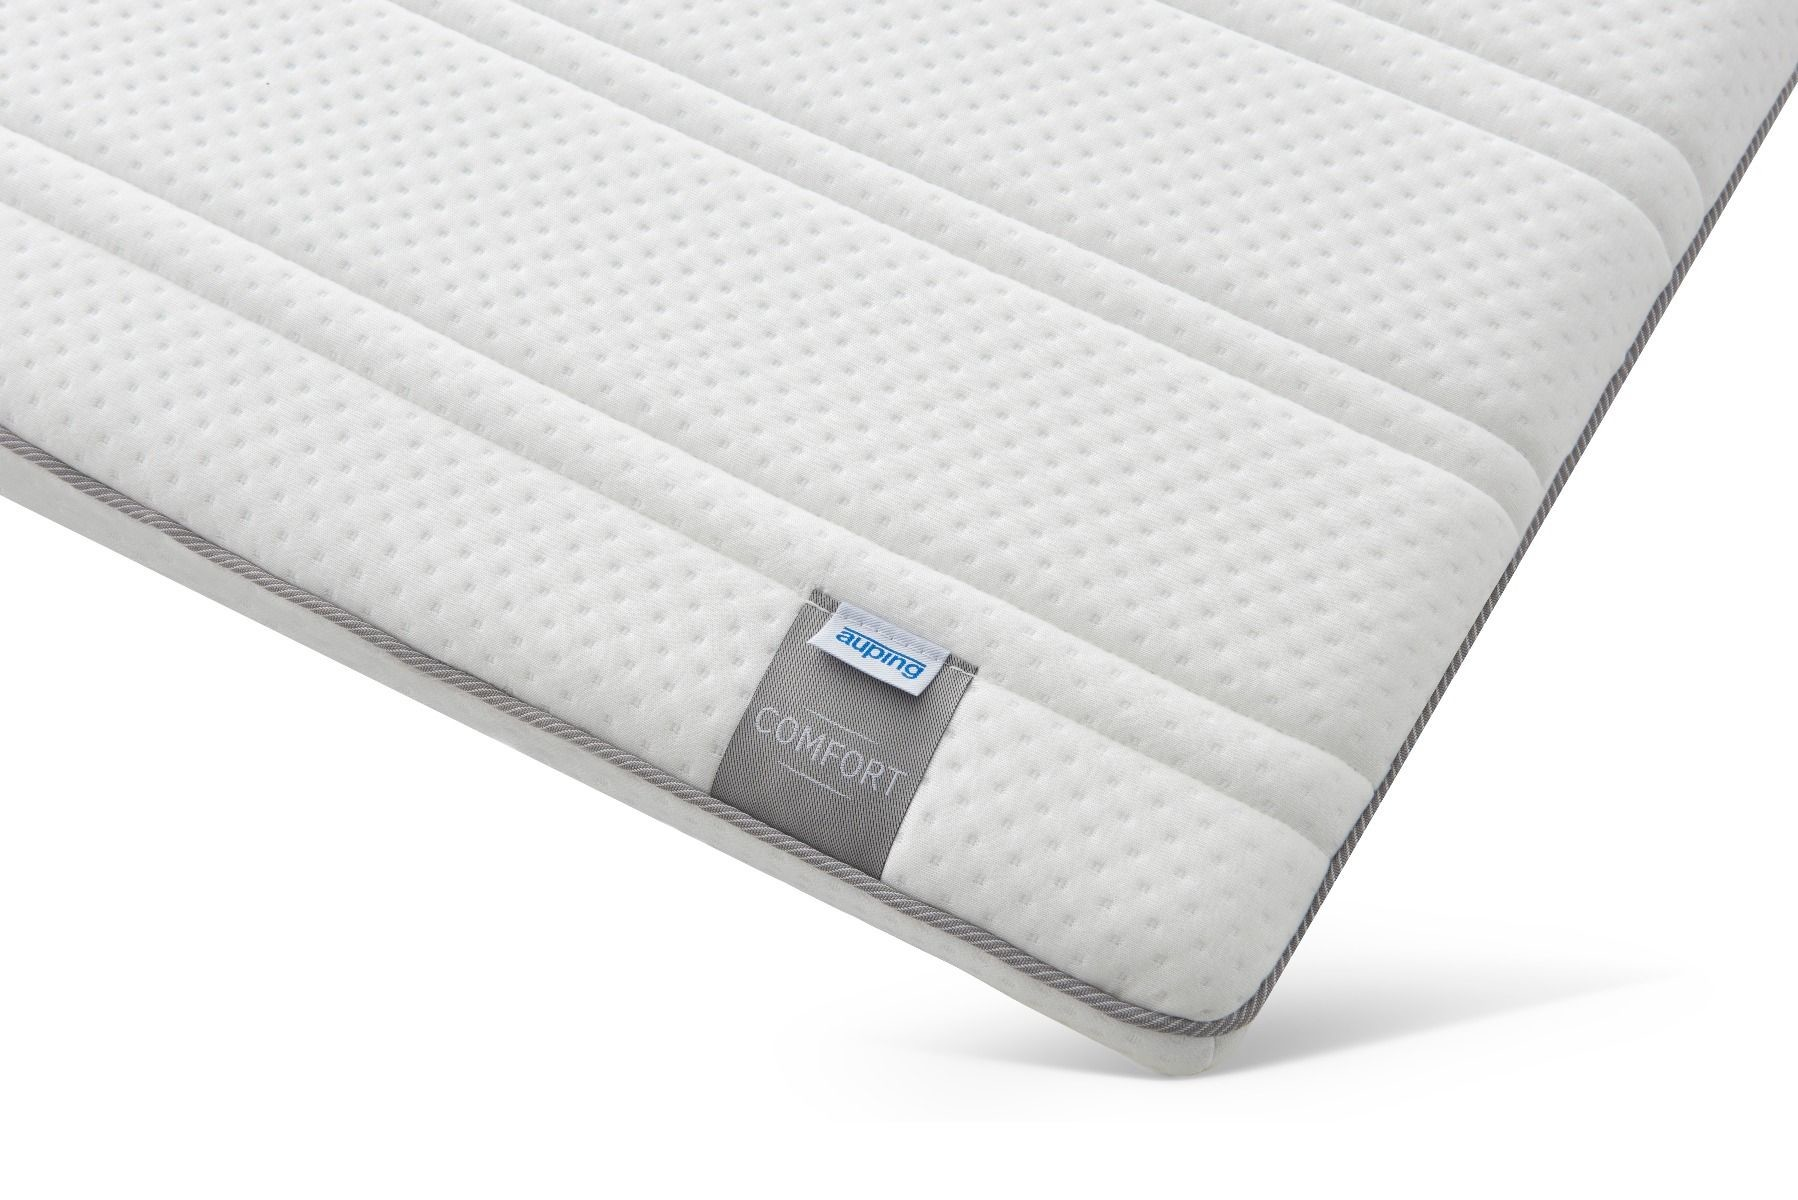 Topper Comfort Auping